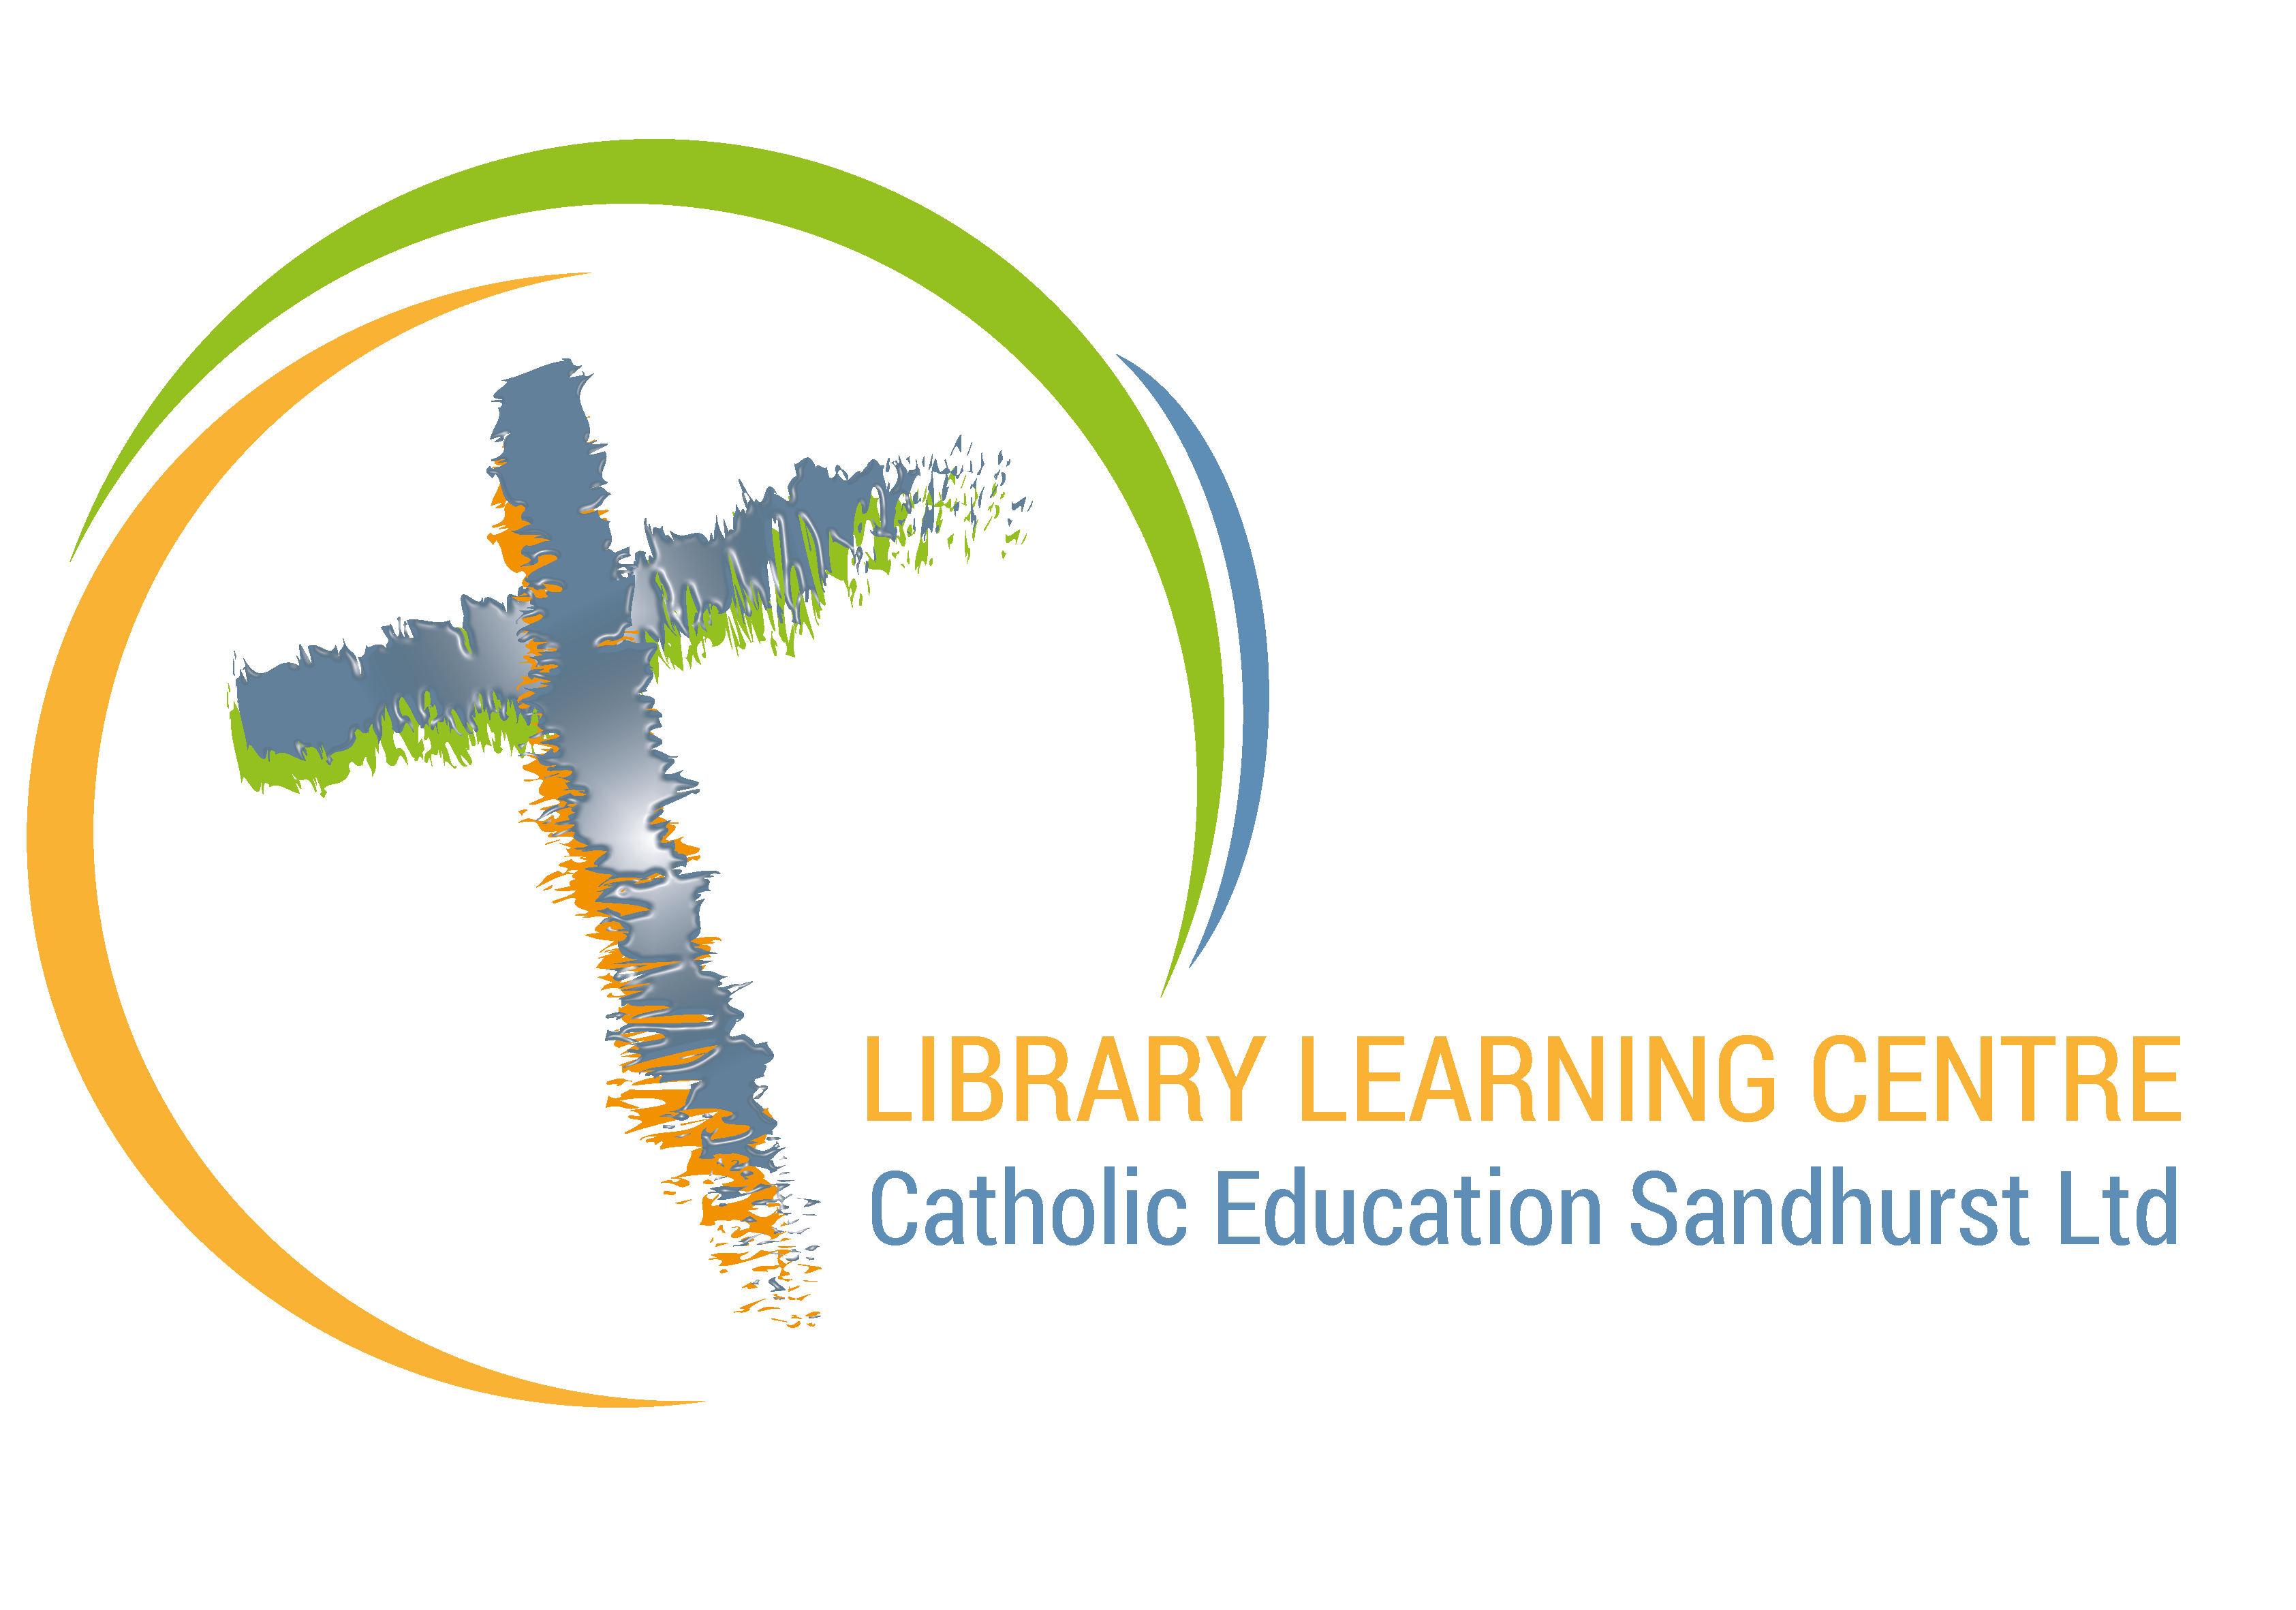 LIBRARY LEARNING CENTRE LOGO 050221